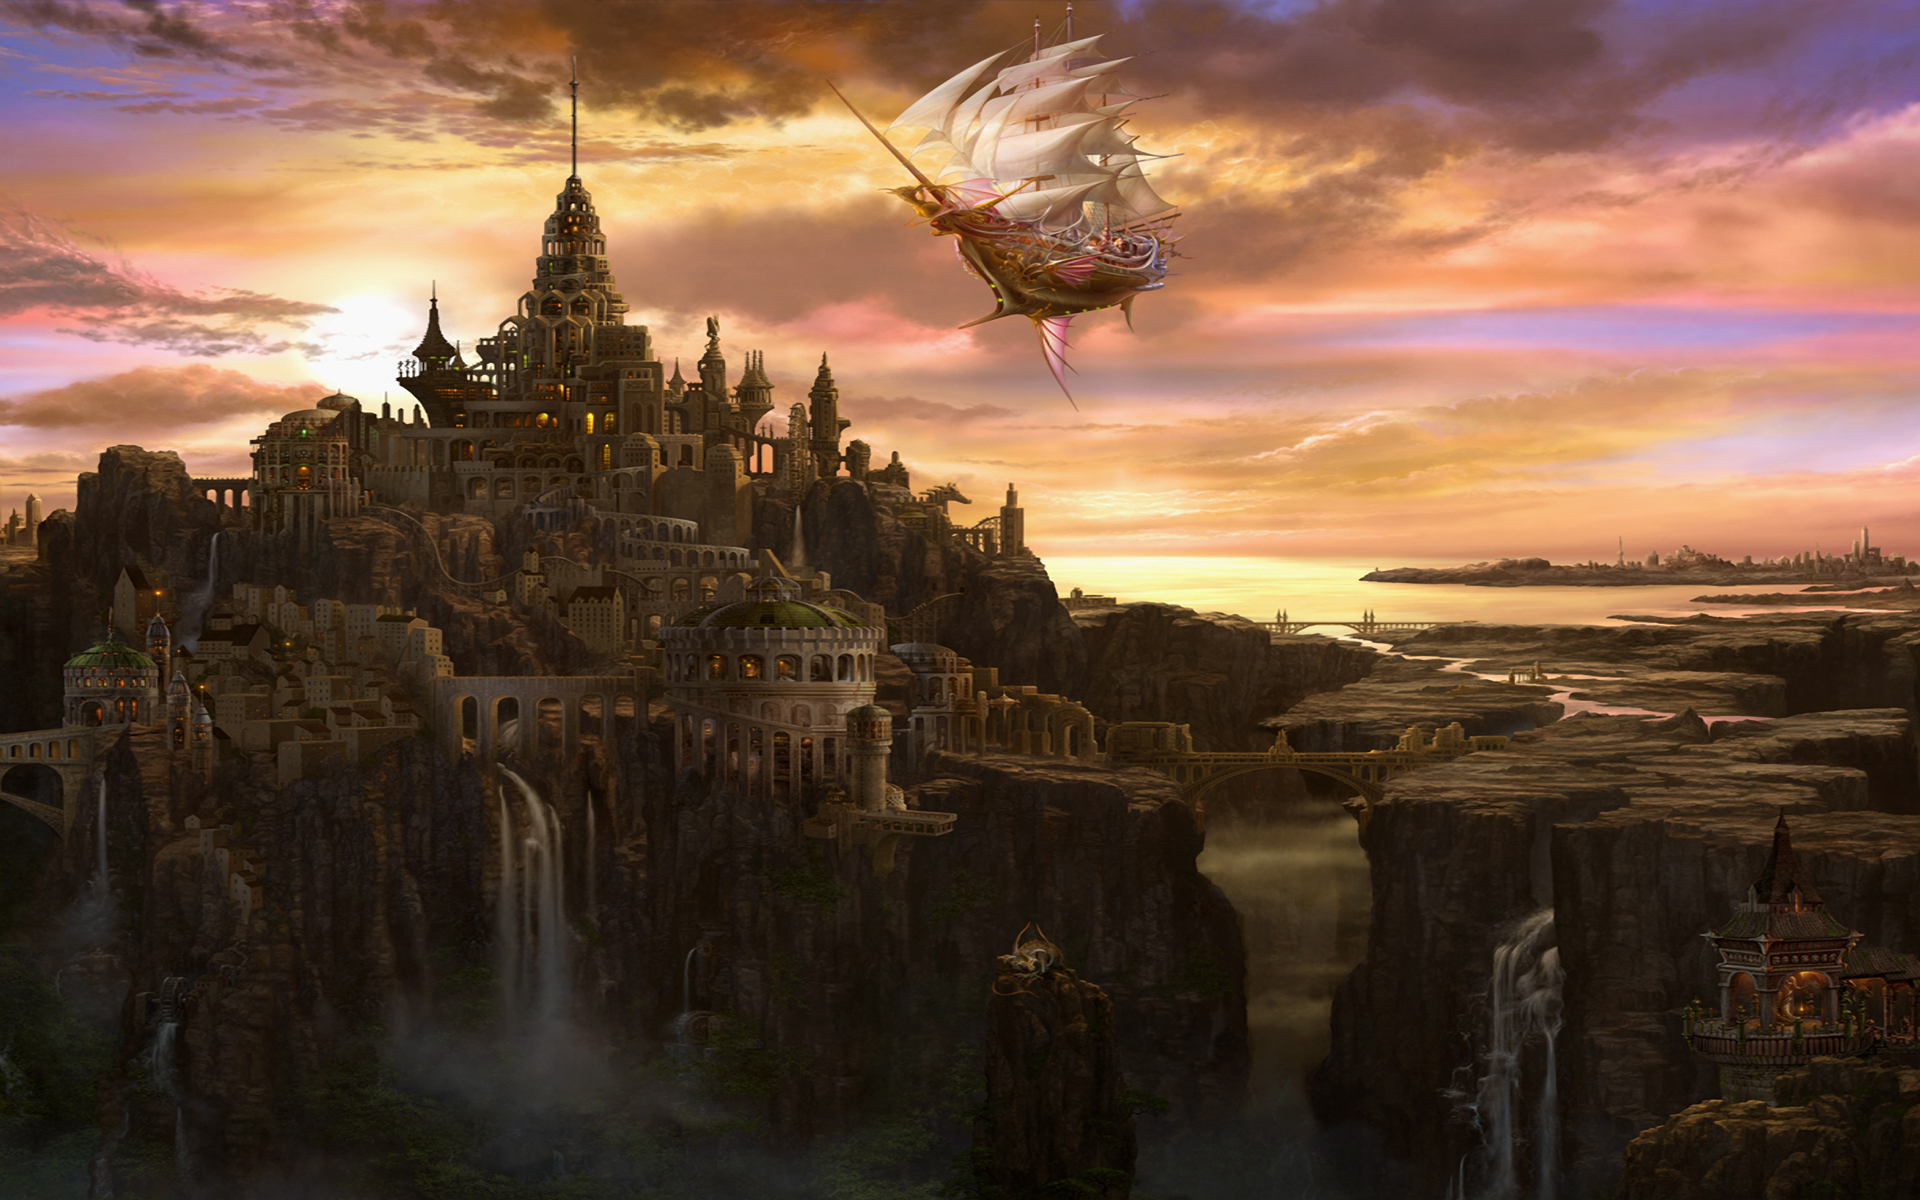 Fantasy - City  - Fantasy - Waterfall - Sky - Ship Wallpaper